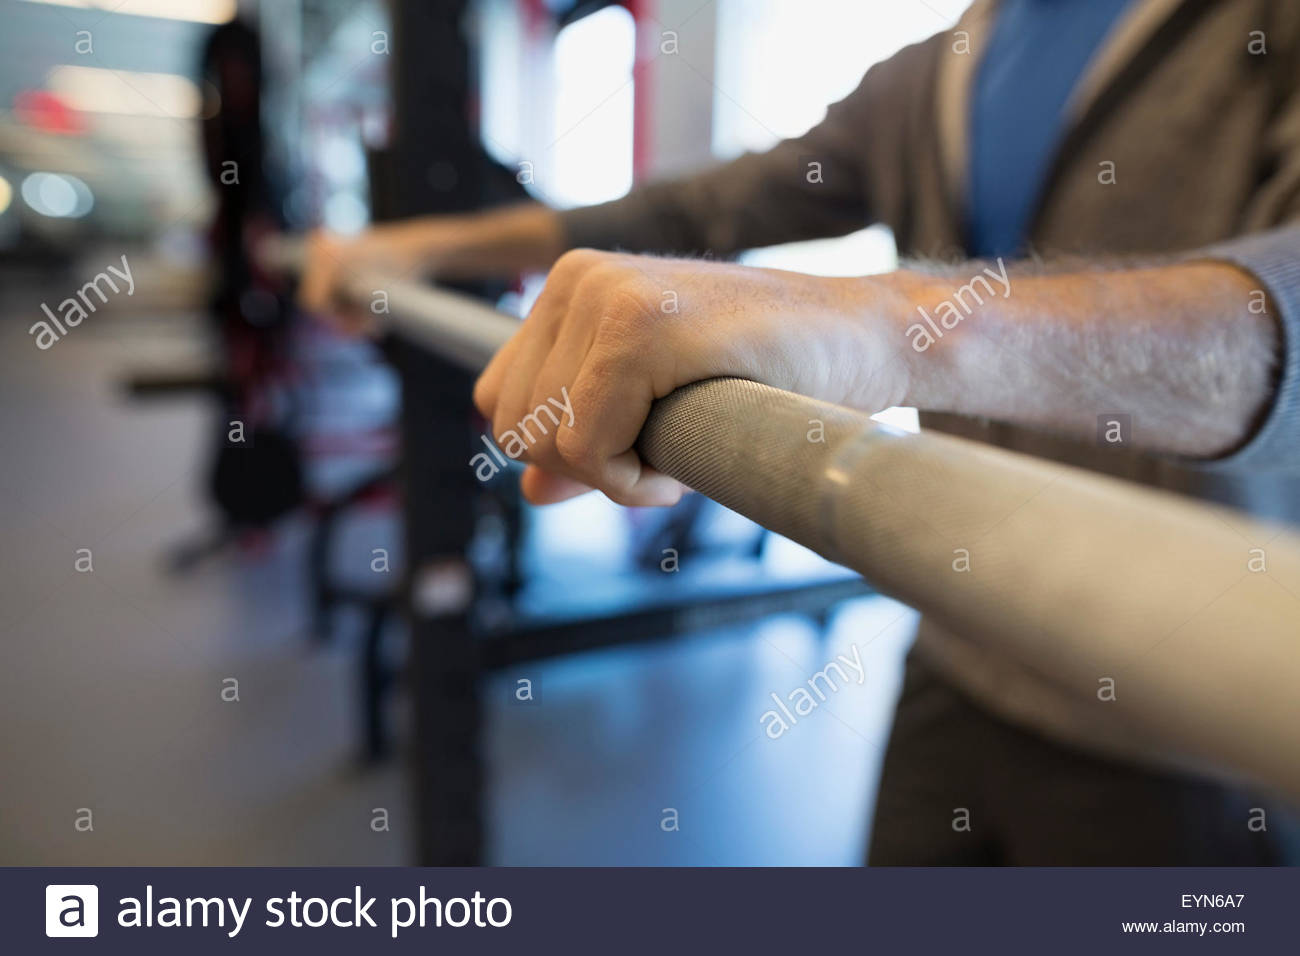 Close up man gripping barbell at gym - Stock Image